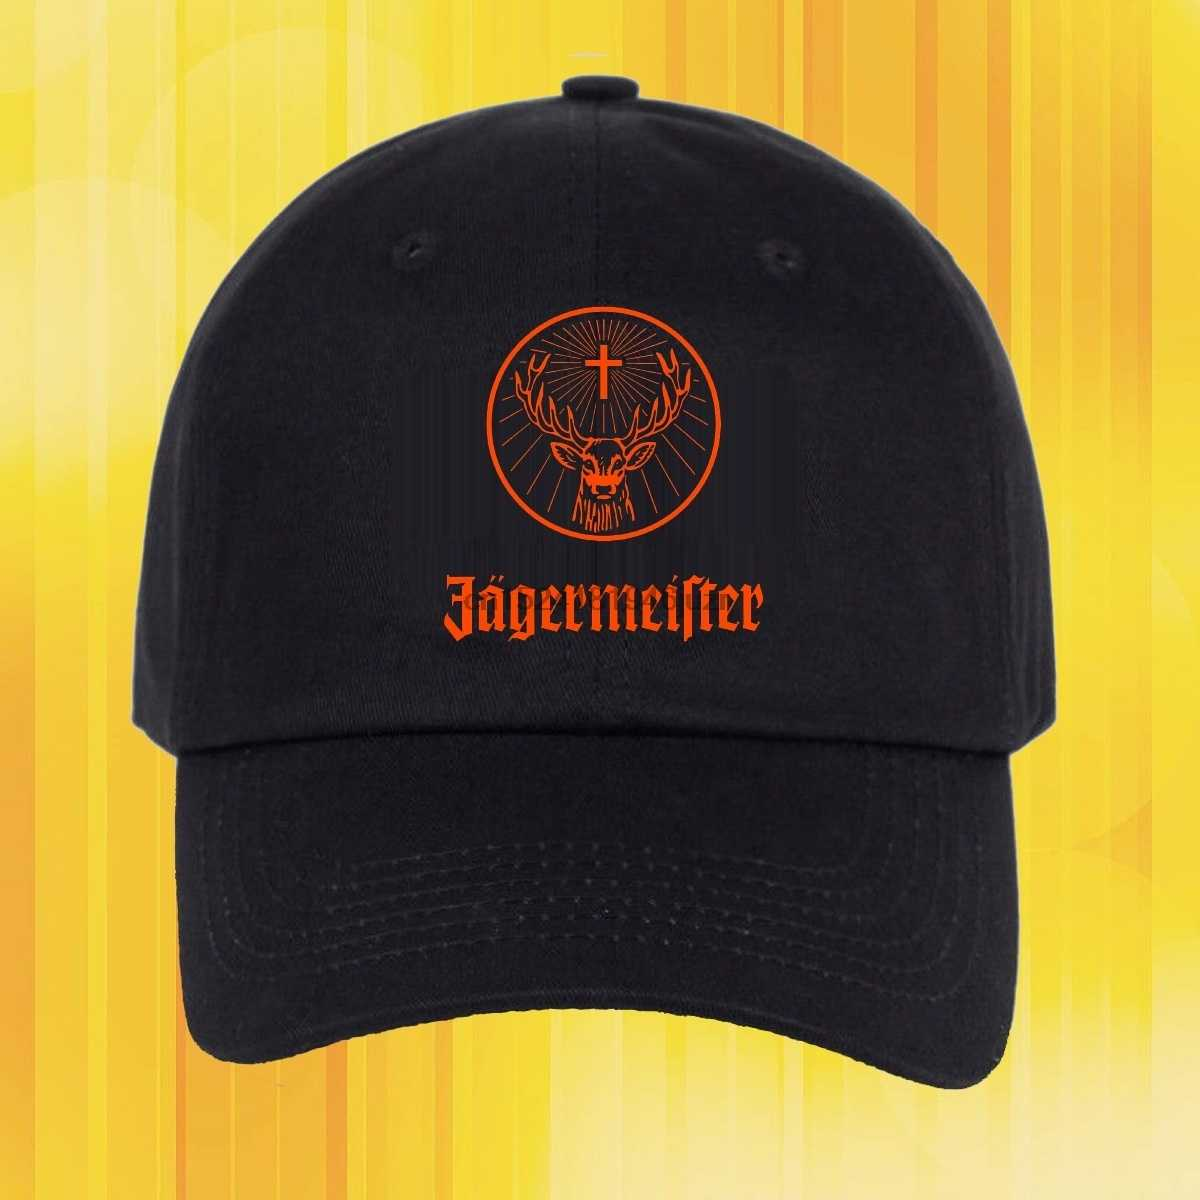 96d10ee8ed2 Detail Feedback Questions about Classic Jagermeister Flat Baseball ...